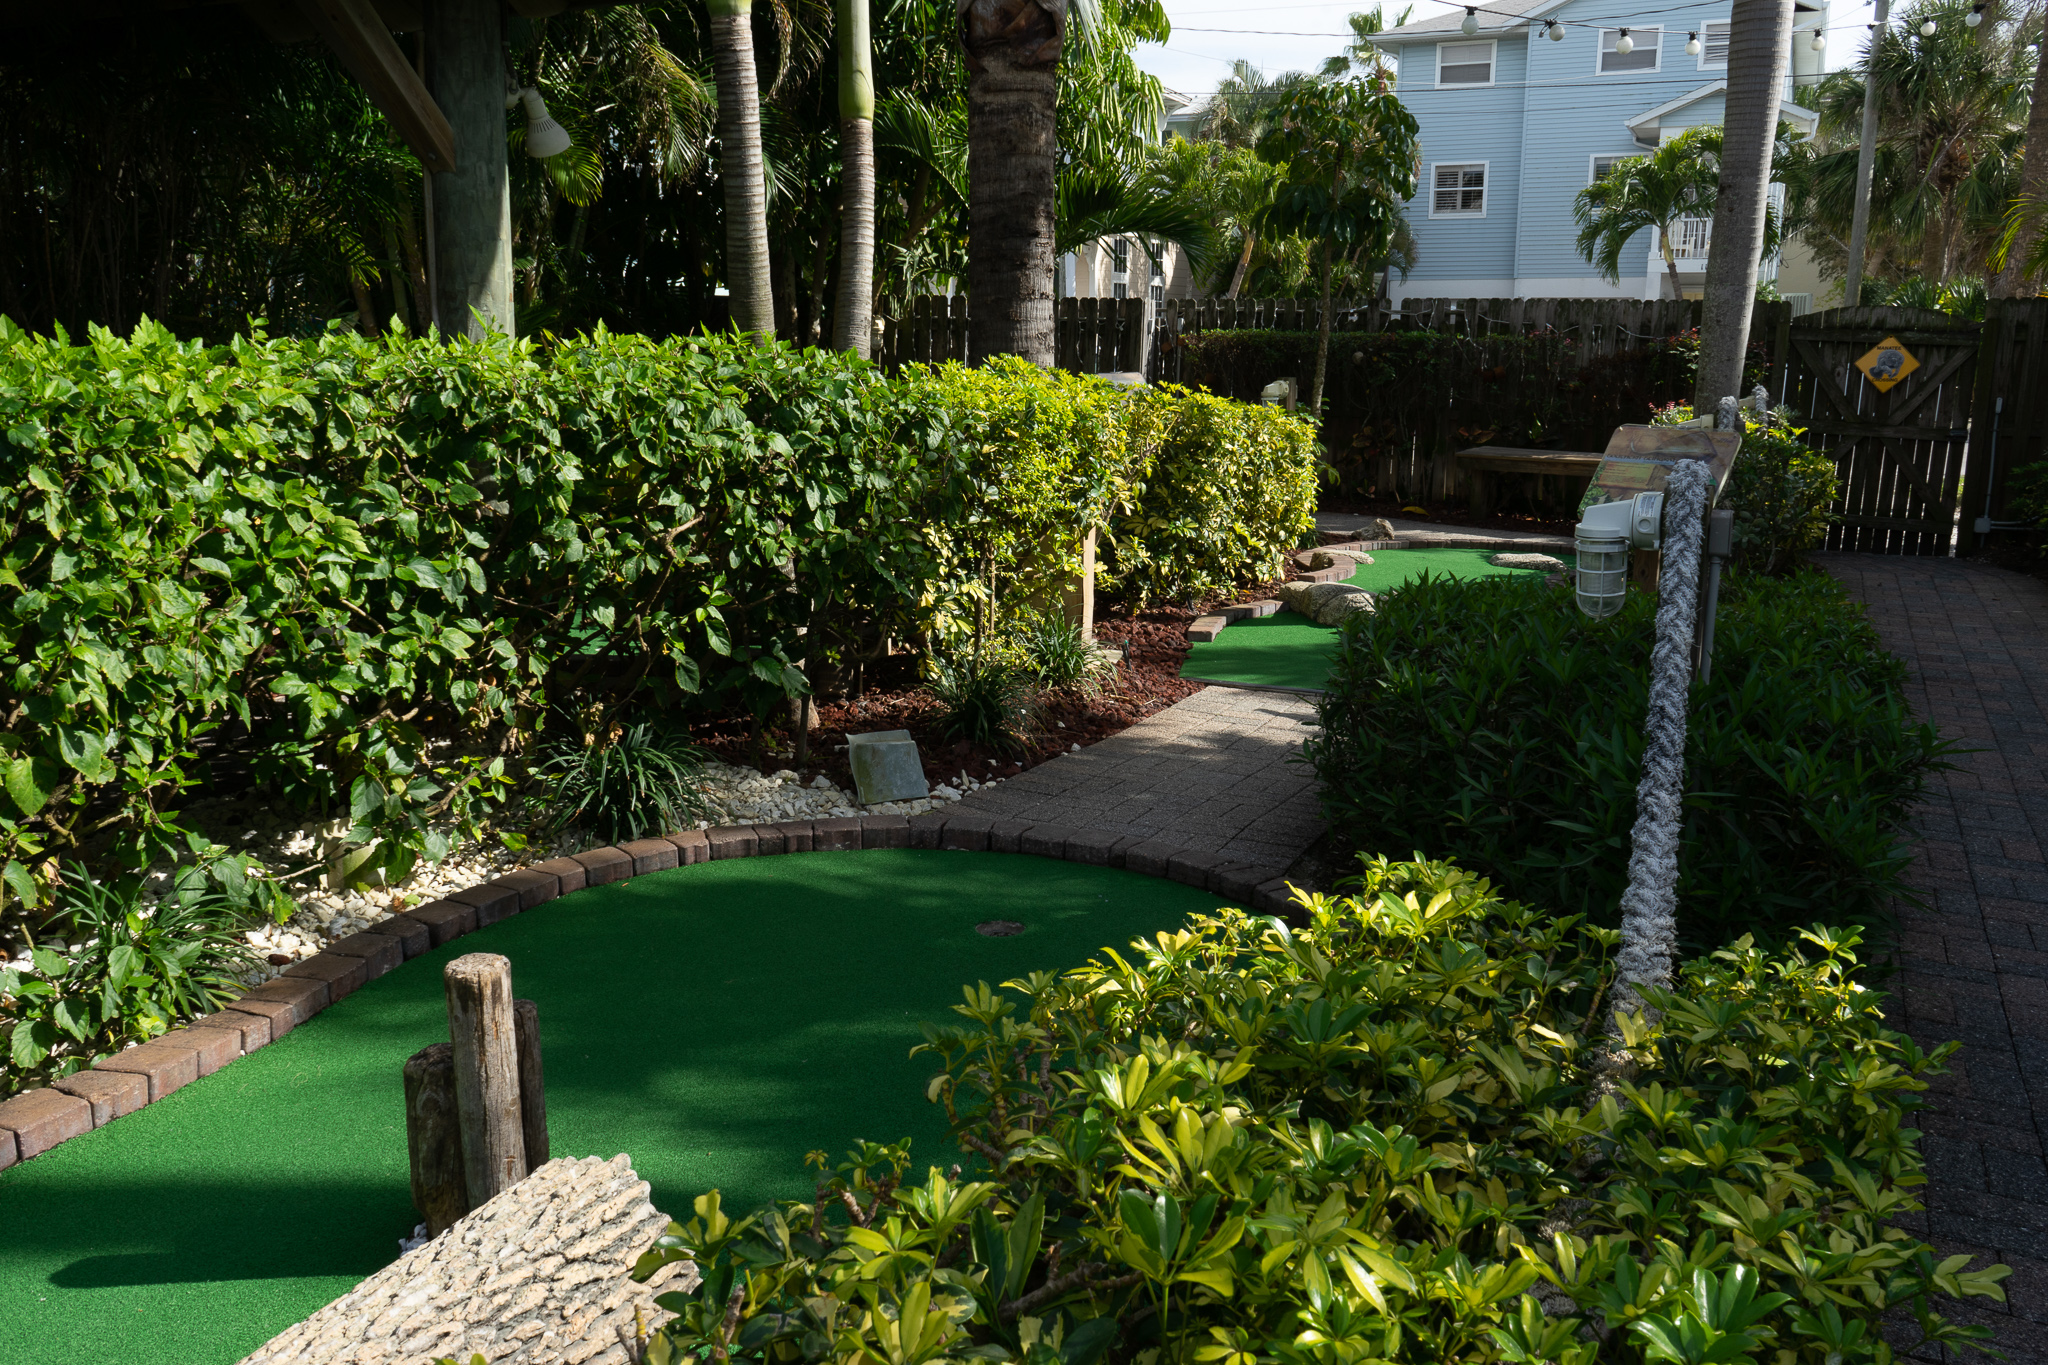 Miniature Golf Bradenton Beach FL